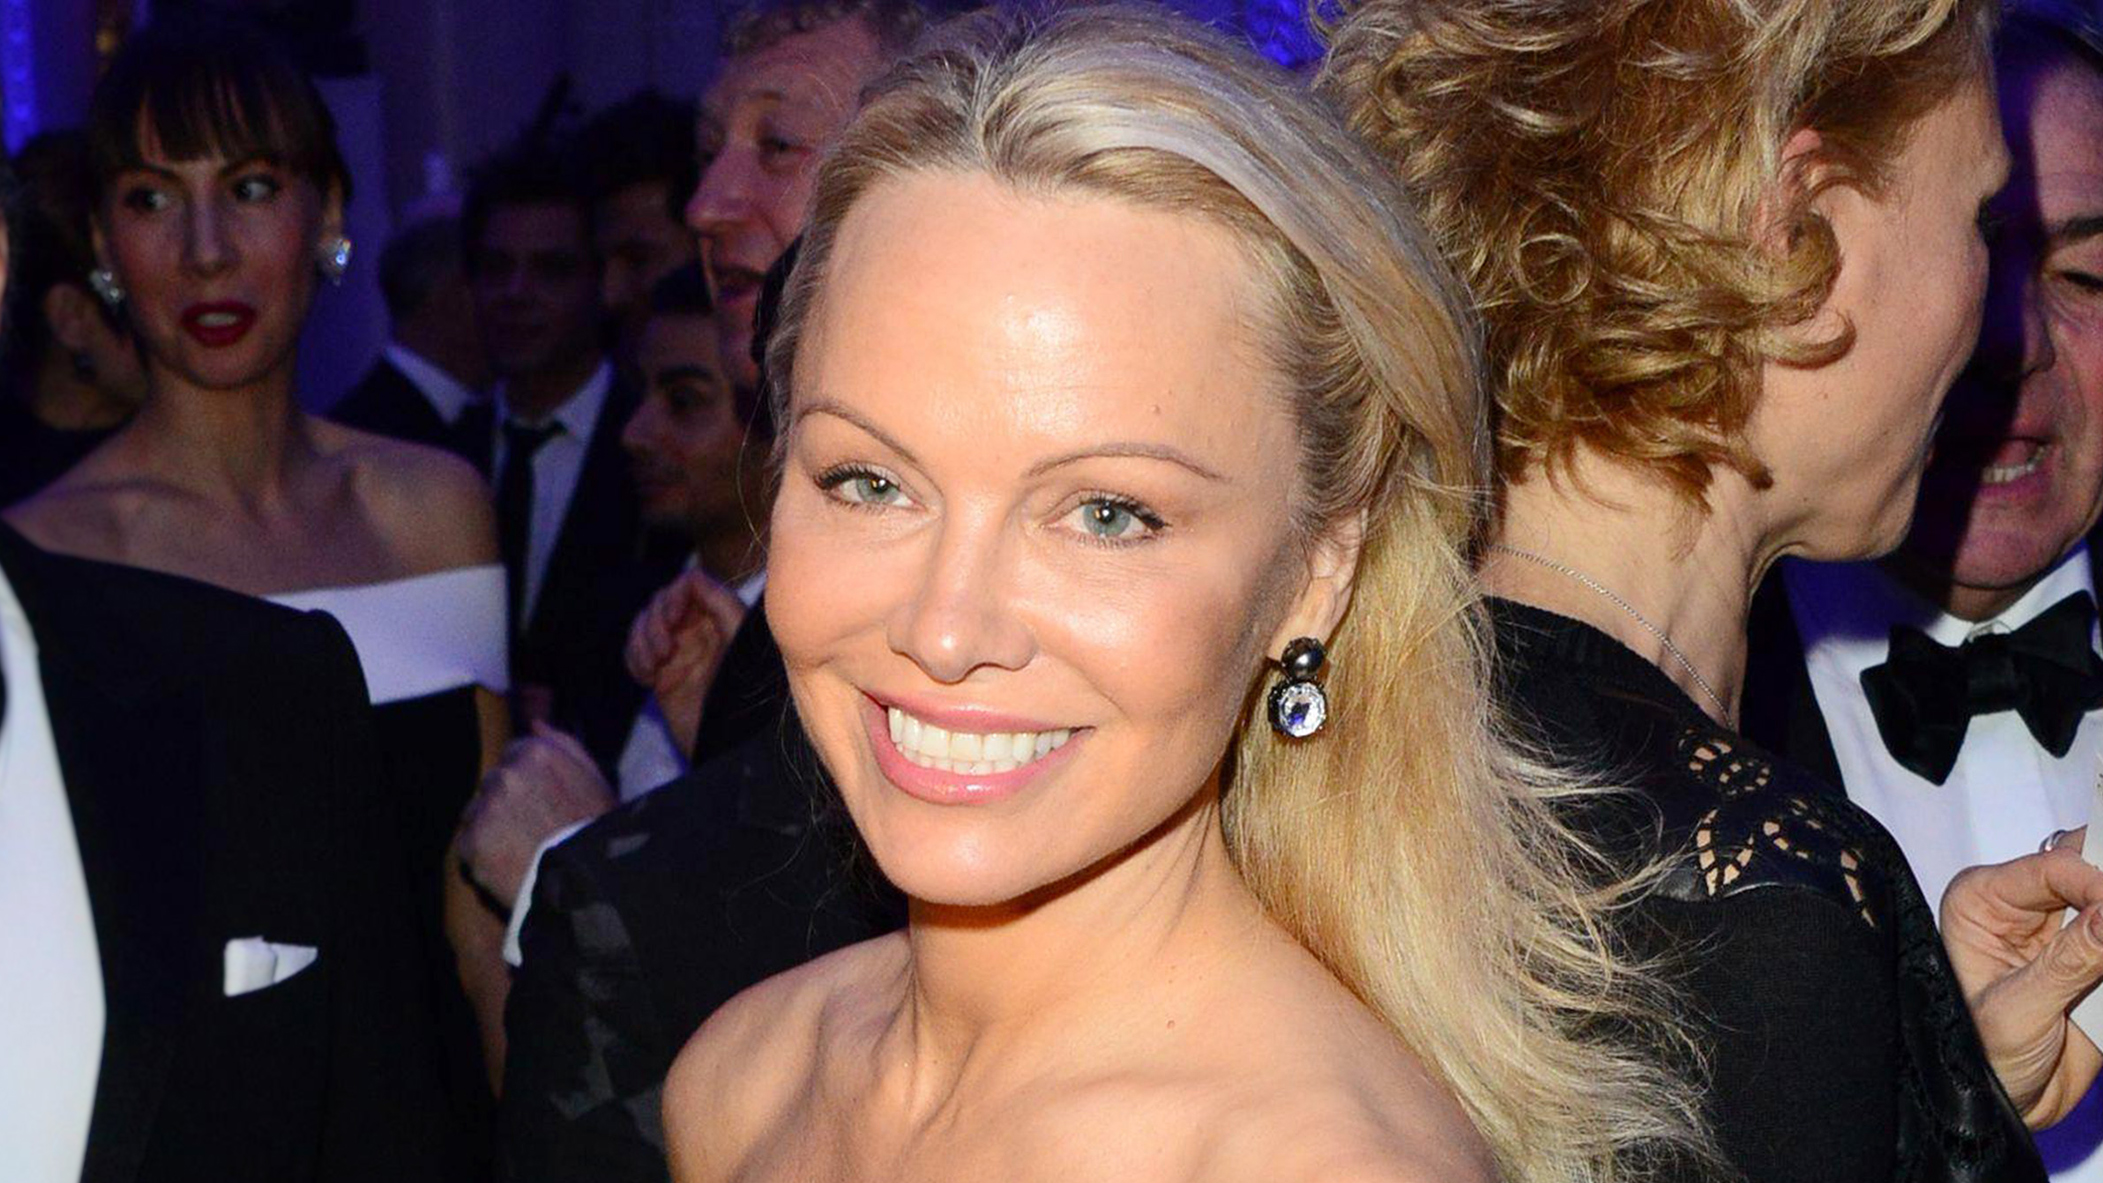 ICloud Pamela Anderson naked (42 foto and video), Pussy, Paparazzi, Feet, braless 2018